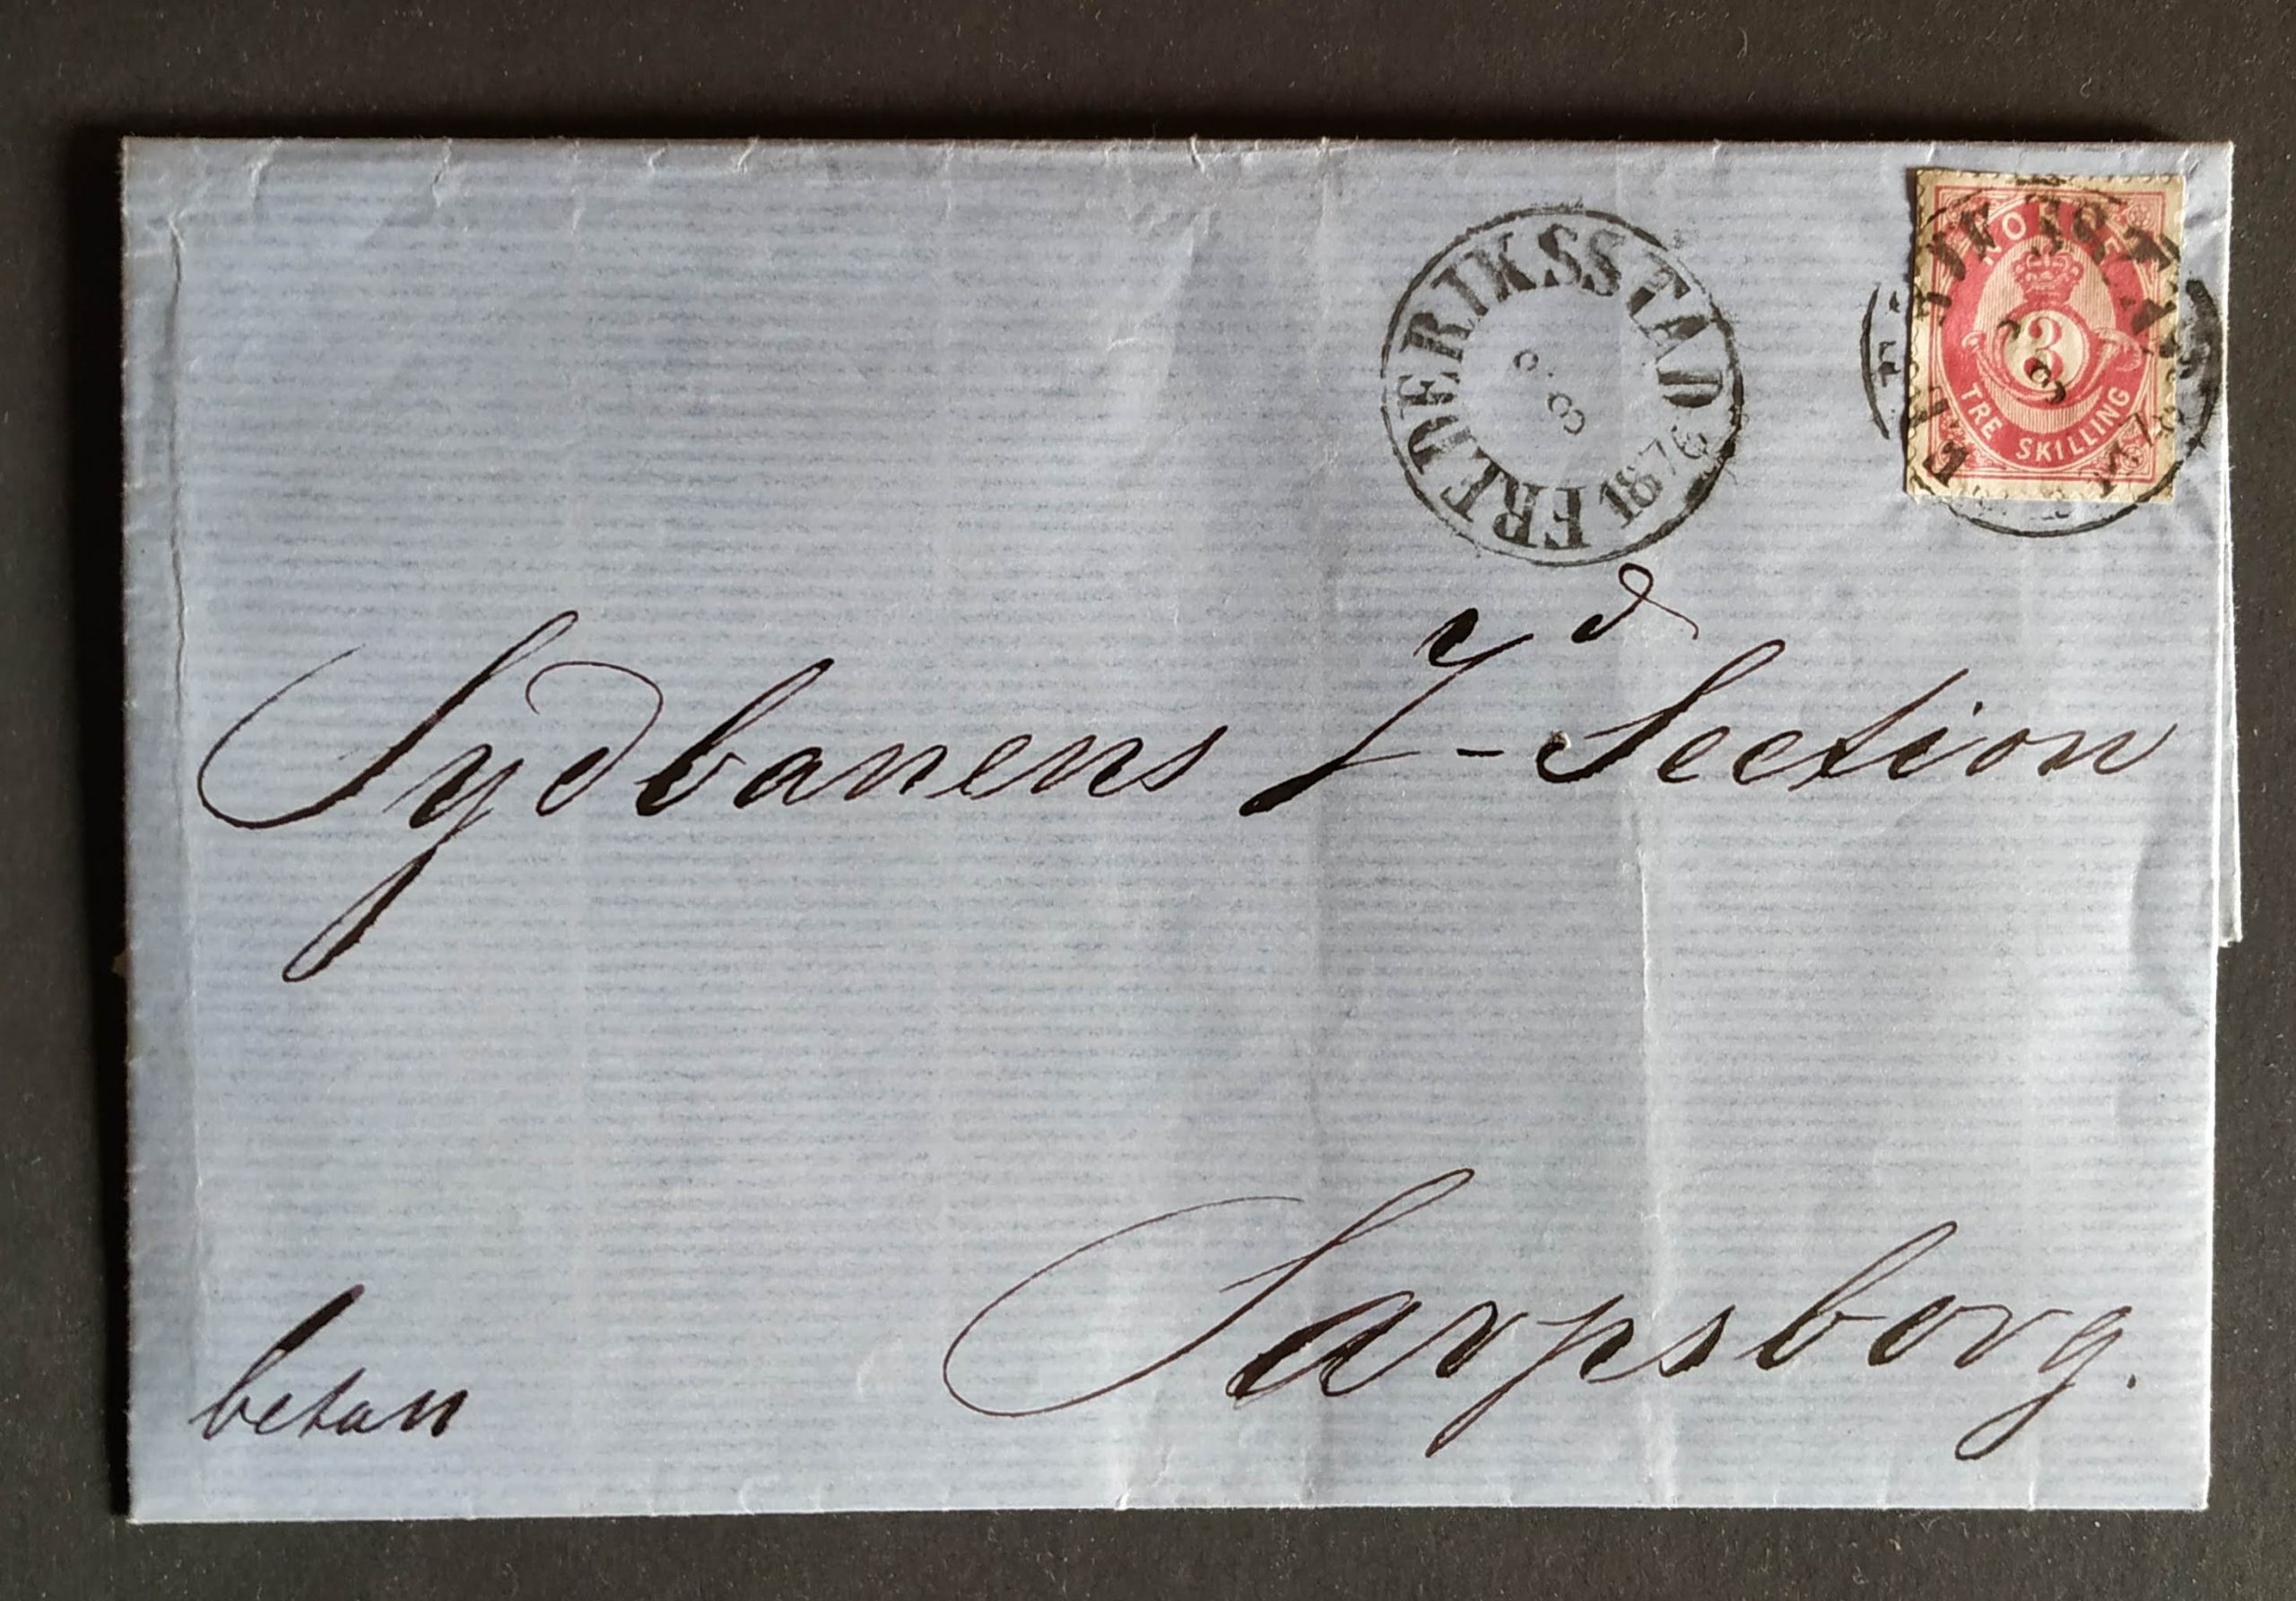 A tiny postal fraud in 1876